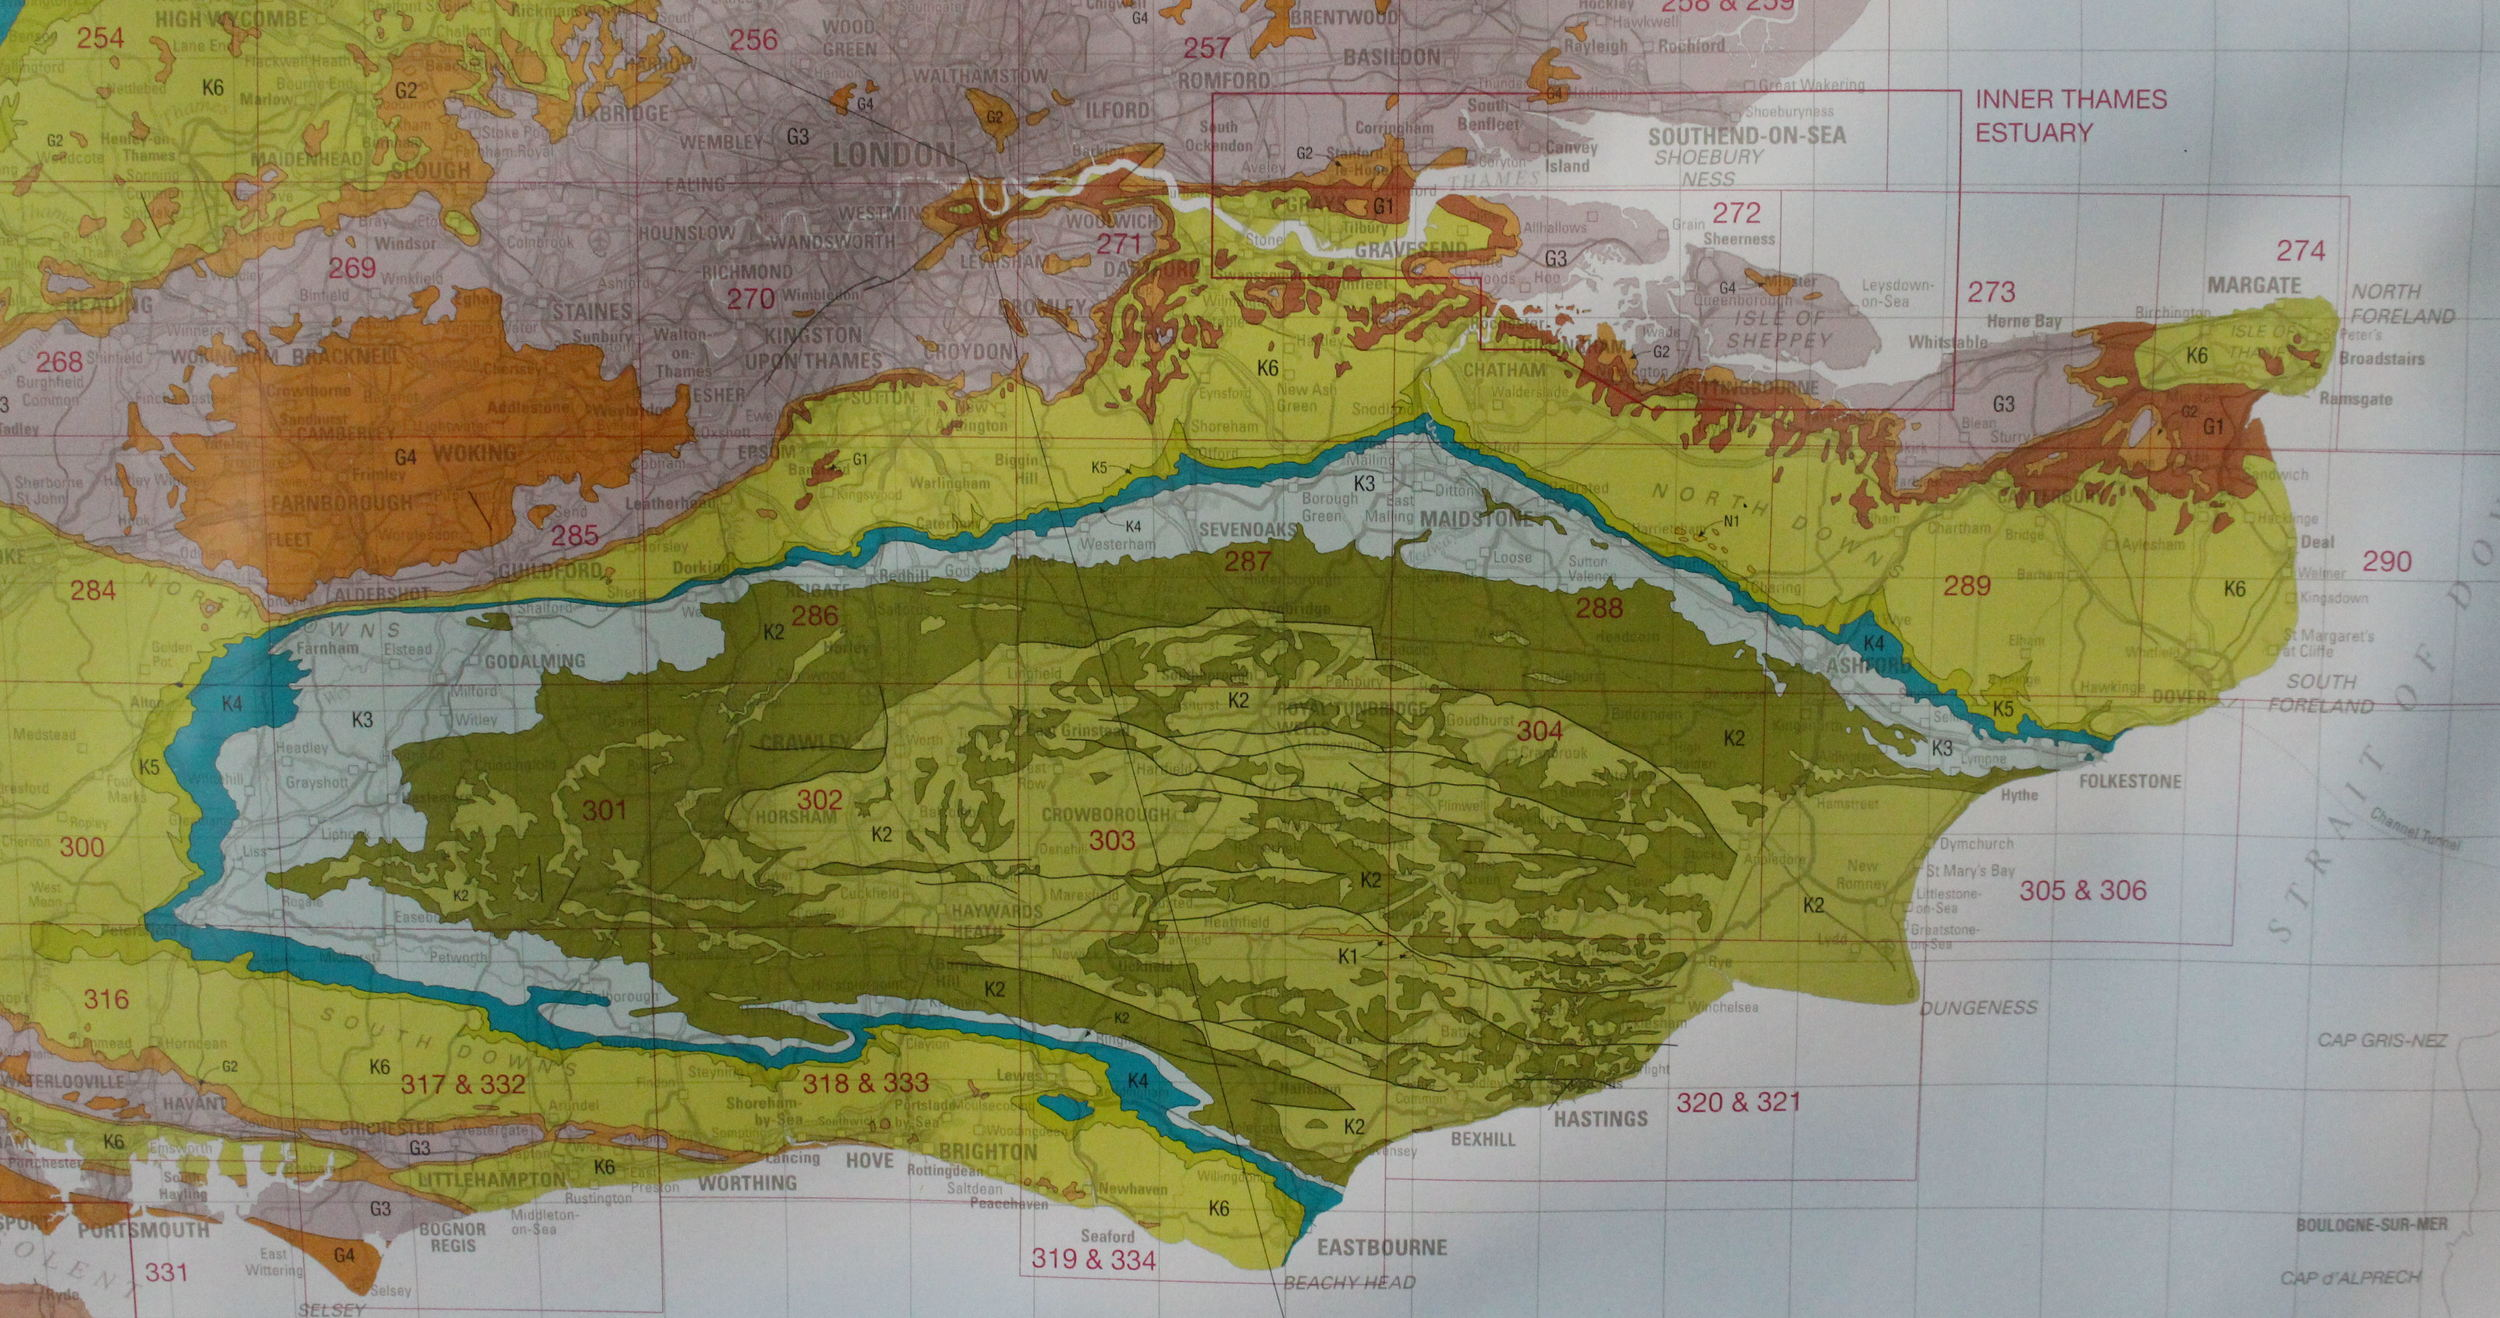 The Greensand Ridge, encircling the Weald of Kent and Sussex, shown in light blue in this terrible photo of a geological map.It's the remainder of a layer of greensand deposit which has been eroded away until just the edges remain; the north and south downs (mustardy-green) are a similar remainder, but of the layer of chalk that was laid above the greensand in the Cretaceous period.